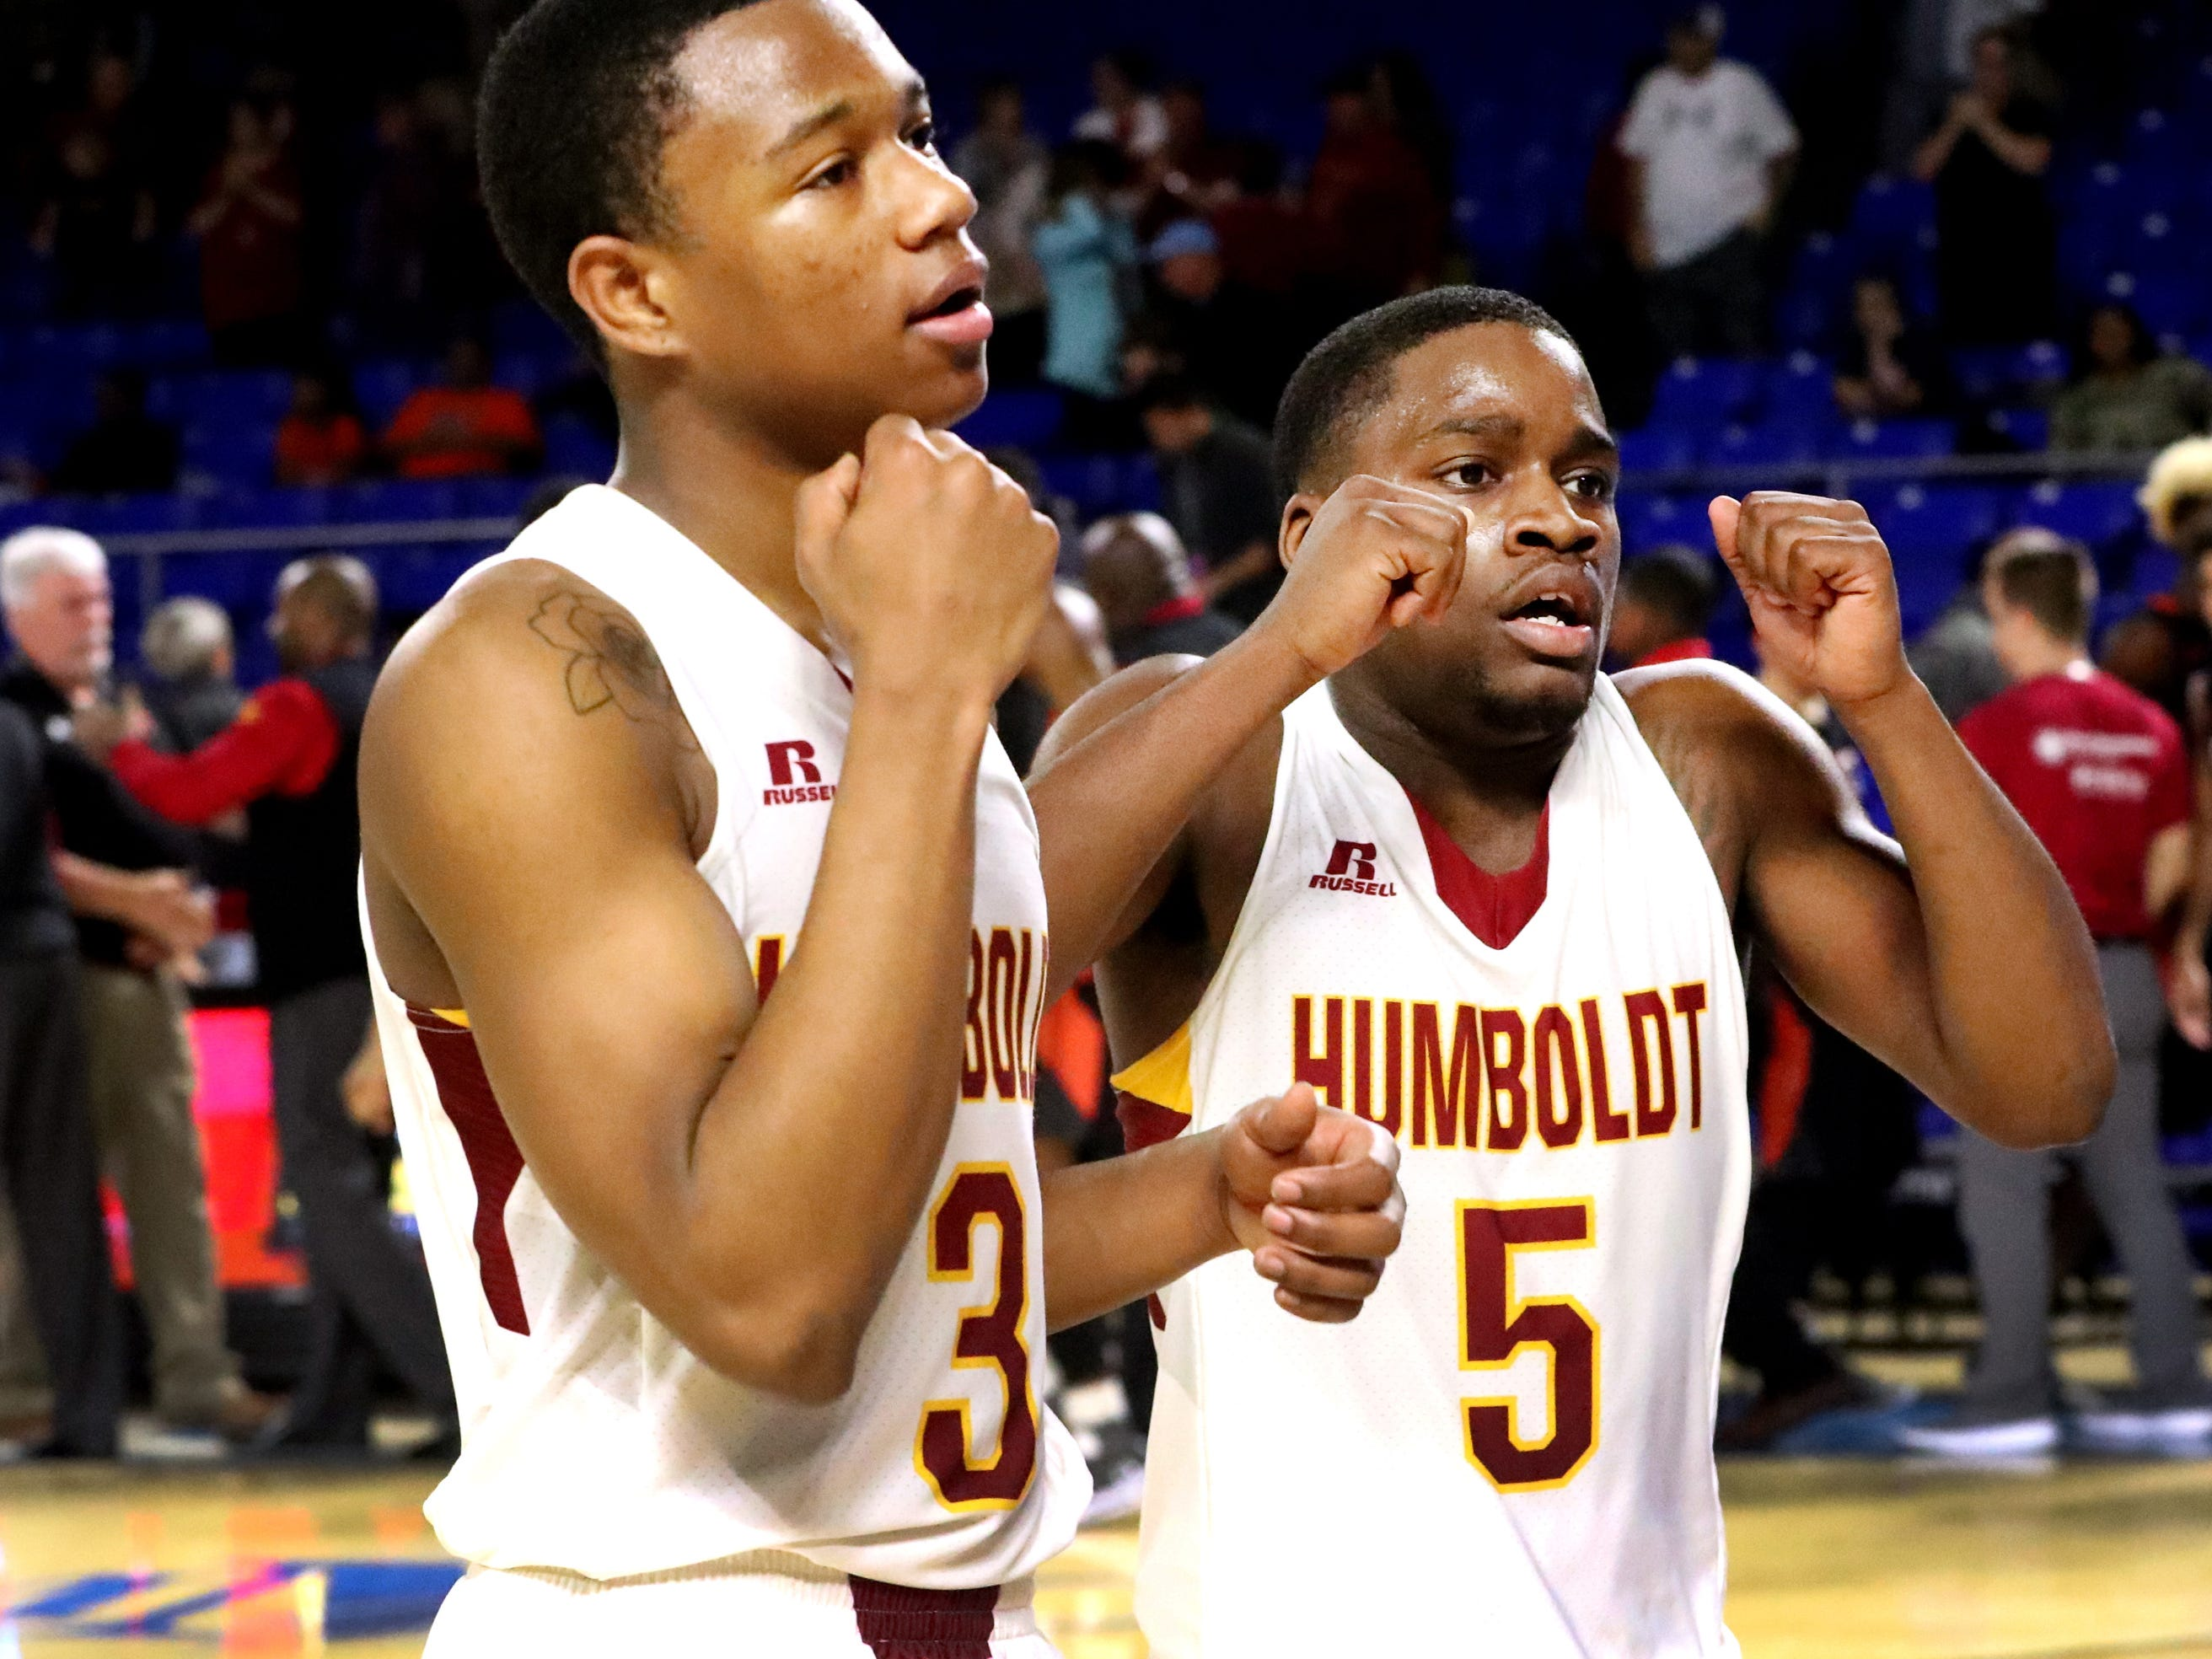 Humboldt's Trent Green (3) and Humboldt's Montrez Ward (5) celebrate beating Fayetteville 65-53 during the quarterfinal round of the TSSAA Class A Boys State Tournament, on Thursday, March 14, 2019, at Murphy Center in Murfreesboro, Tenn.